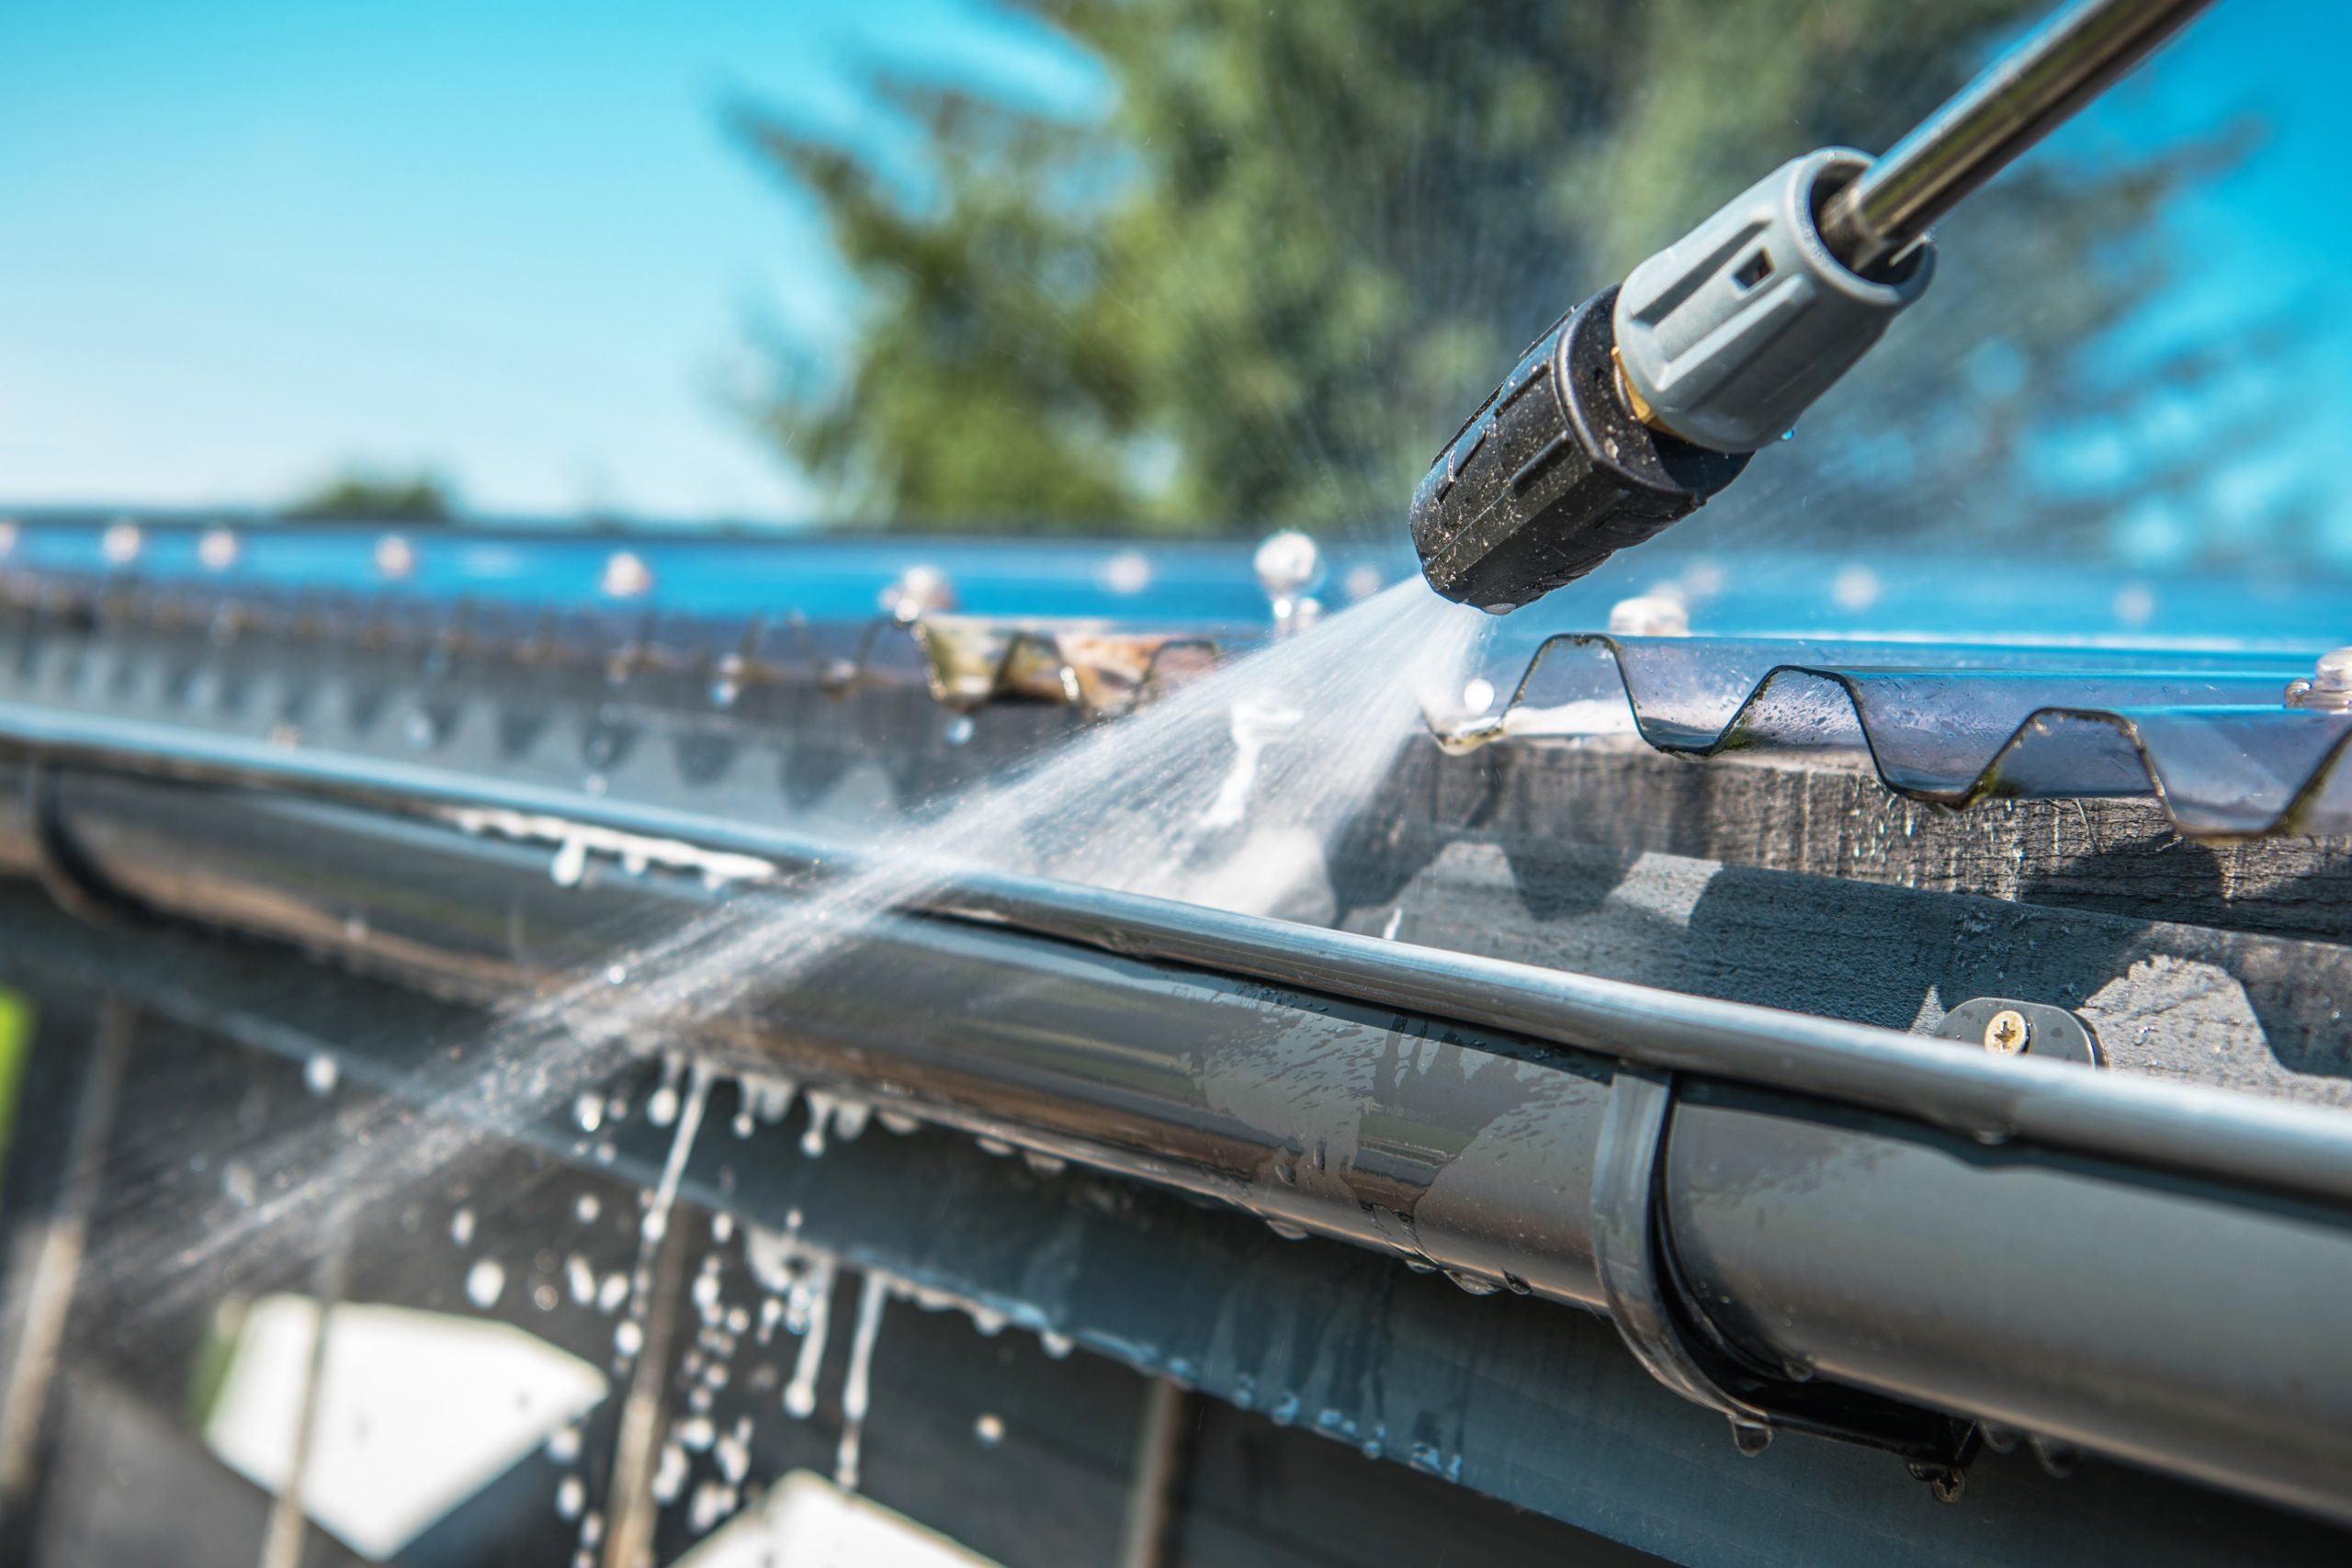 Spring Rain Gutters Cleaning Using Pressure Washer. Closeup Photo.